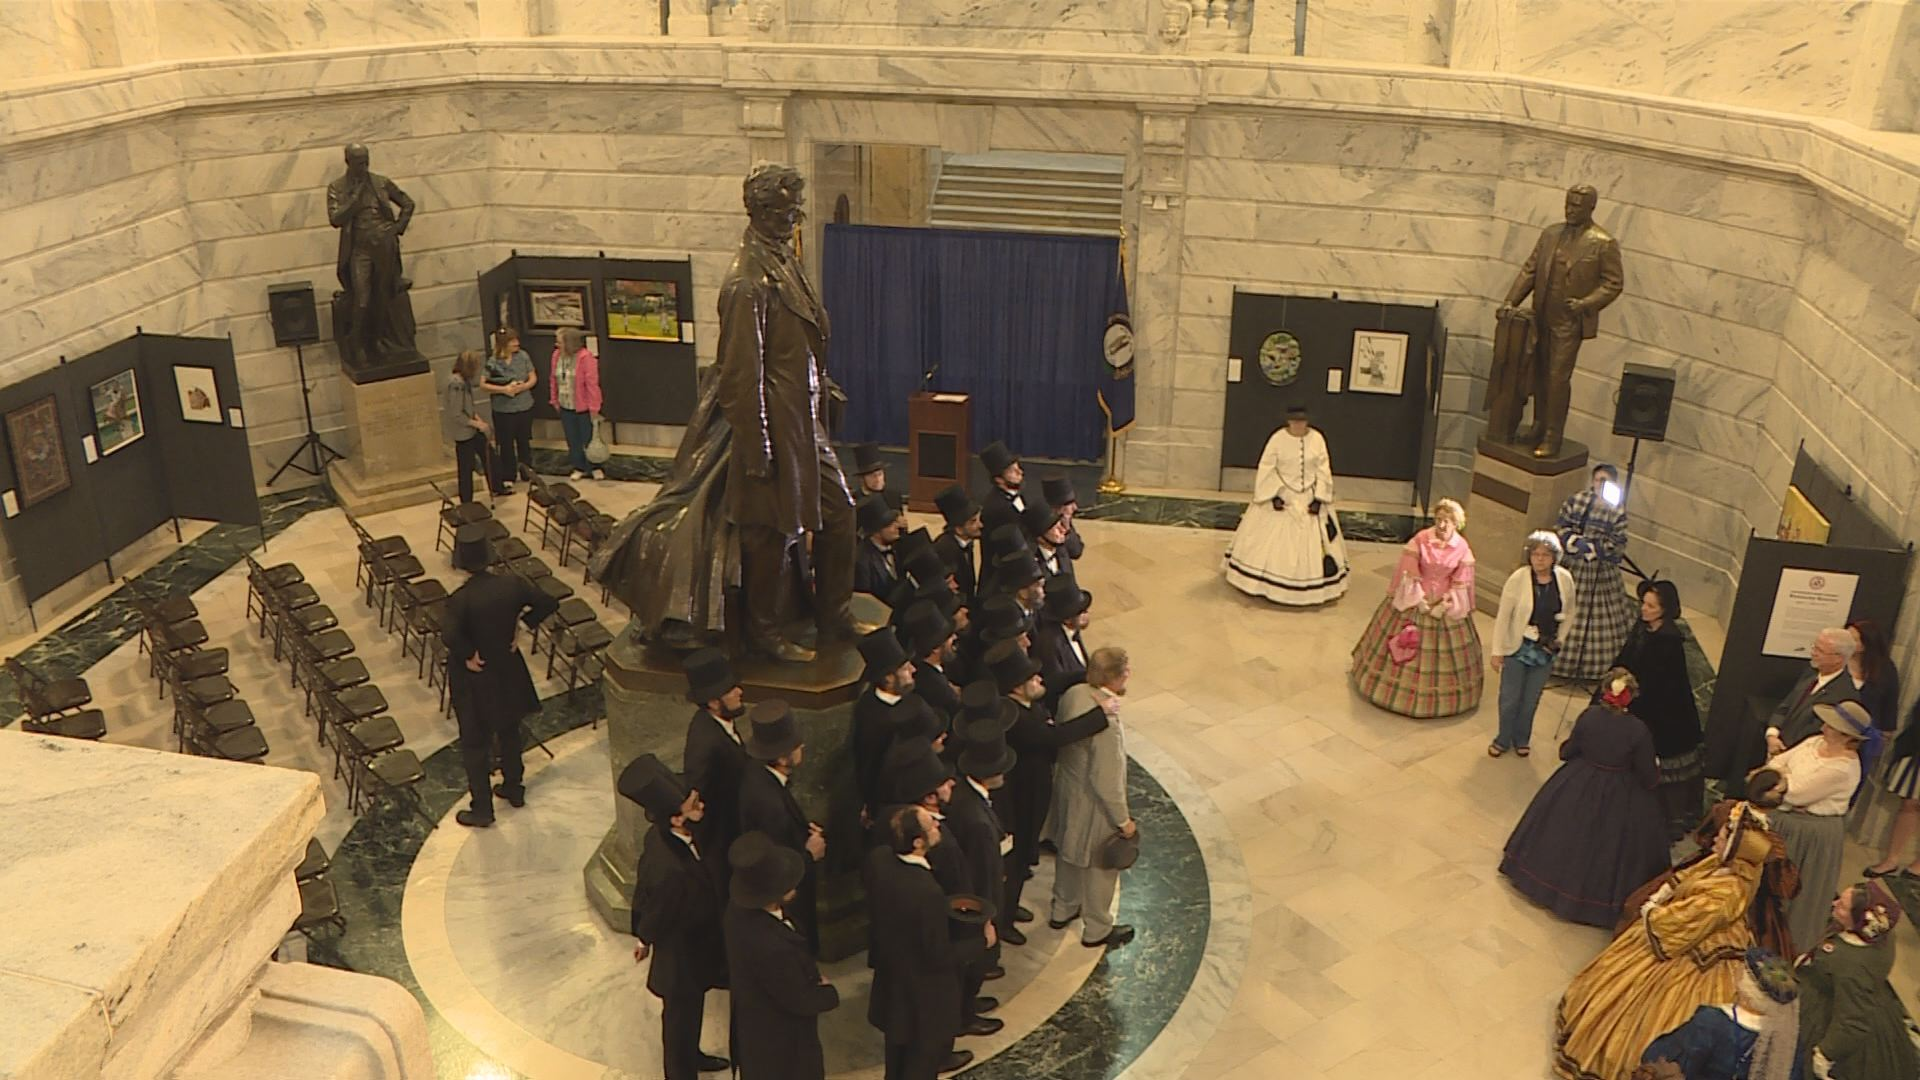 Members of the Association of Lincoln Presenters posed with the statue in the Capitol rotunda, as Mary Lincoln presenters looked on.